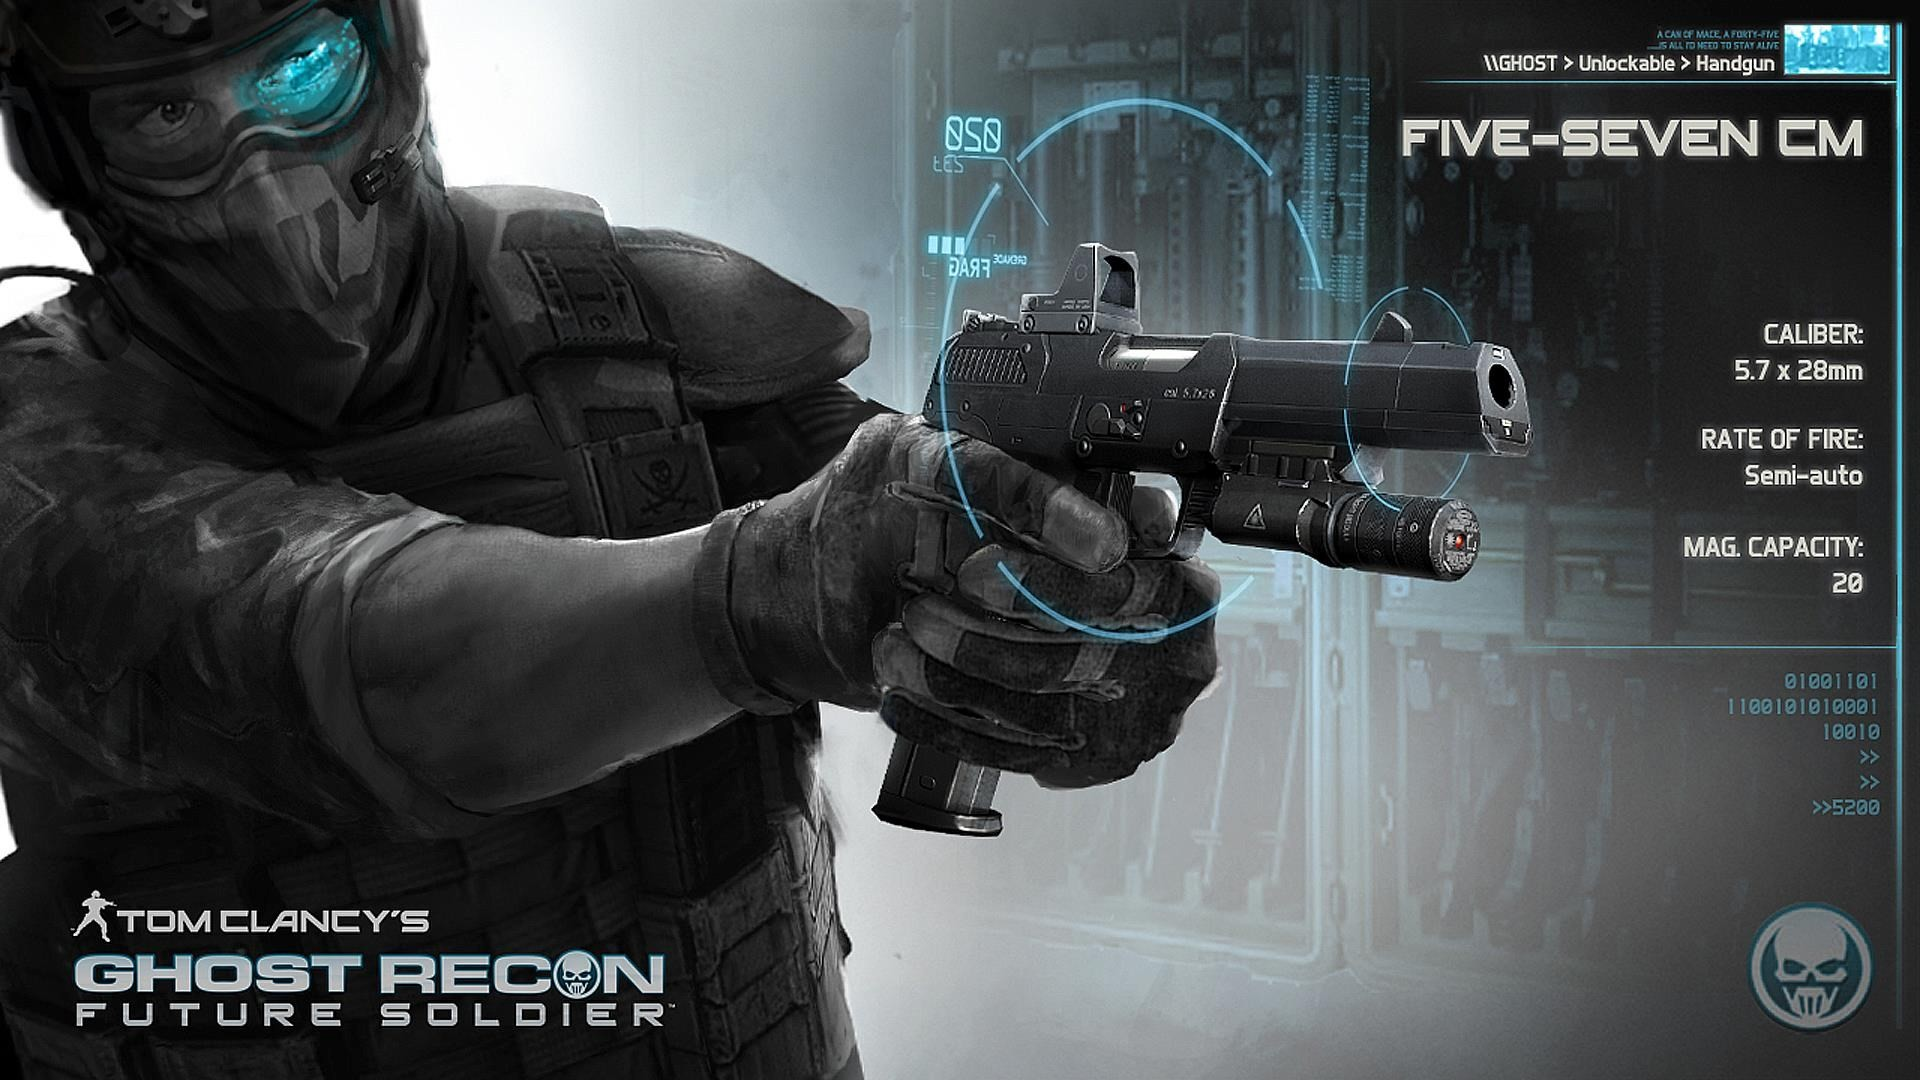 ghost recon future soldier wallpaper 87 images